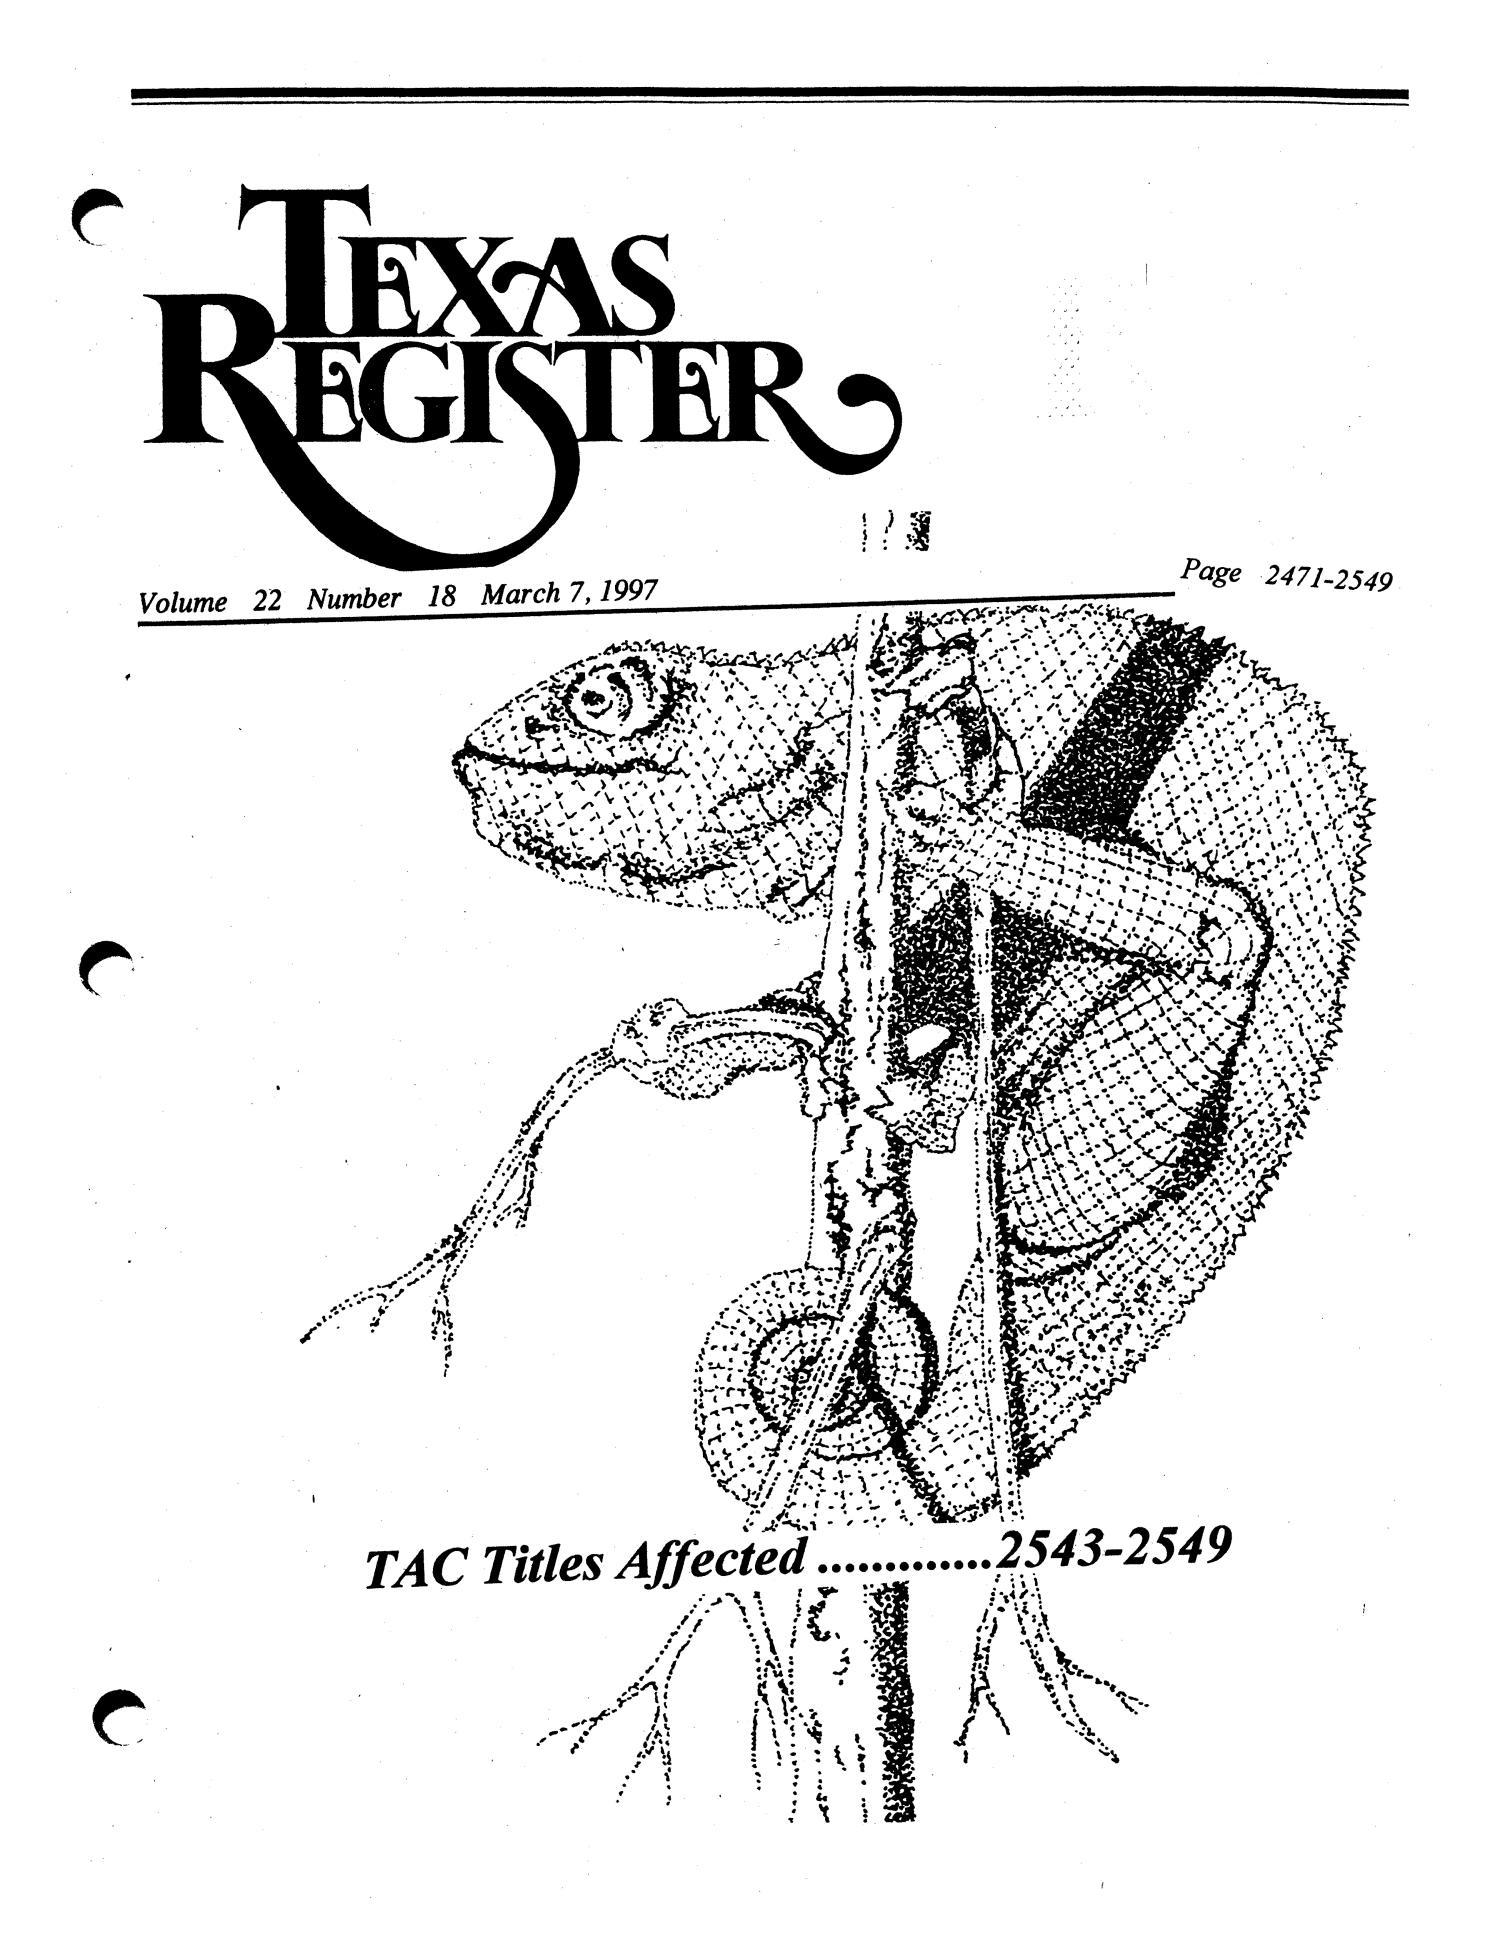 Texas Register, Volume 22, Number 18, Pages 2471-2549